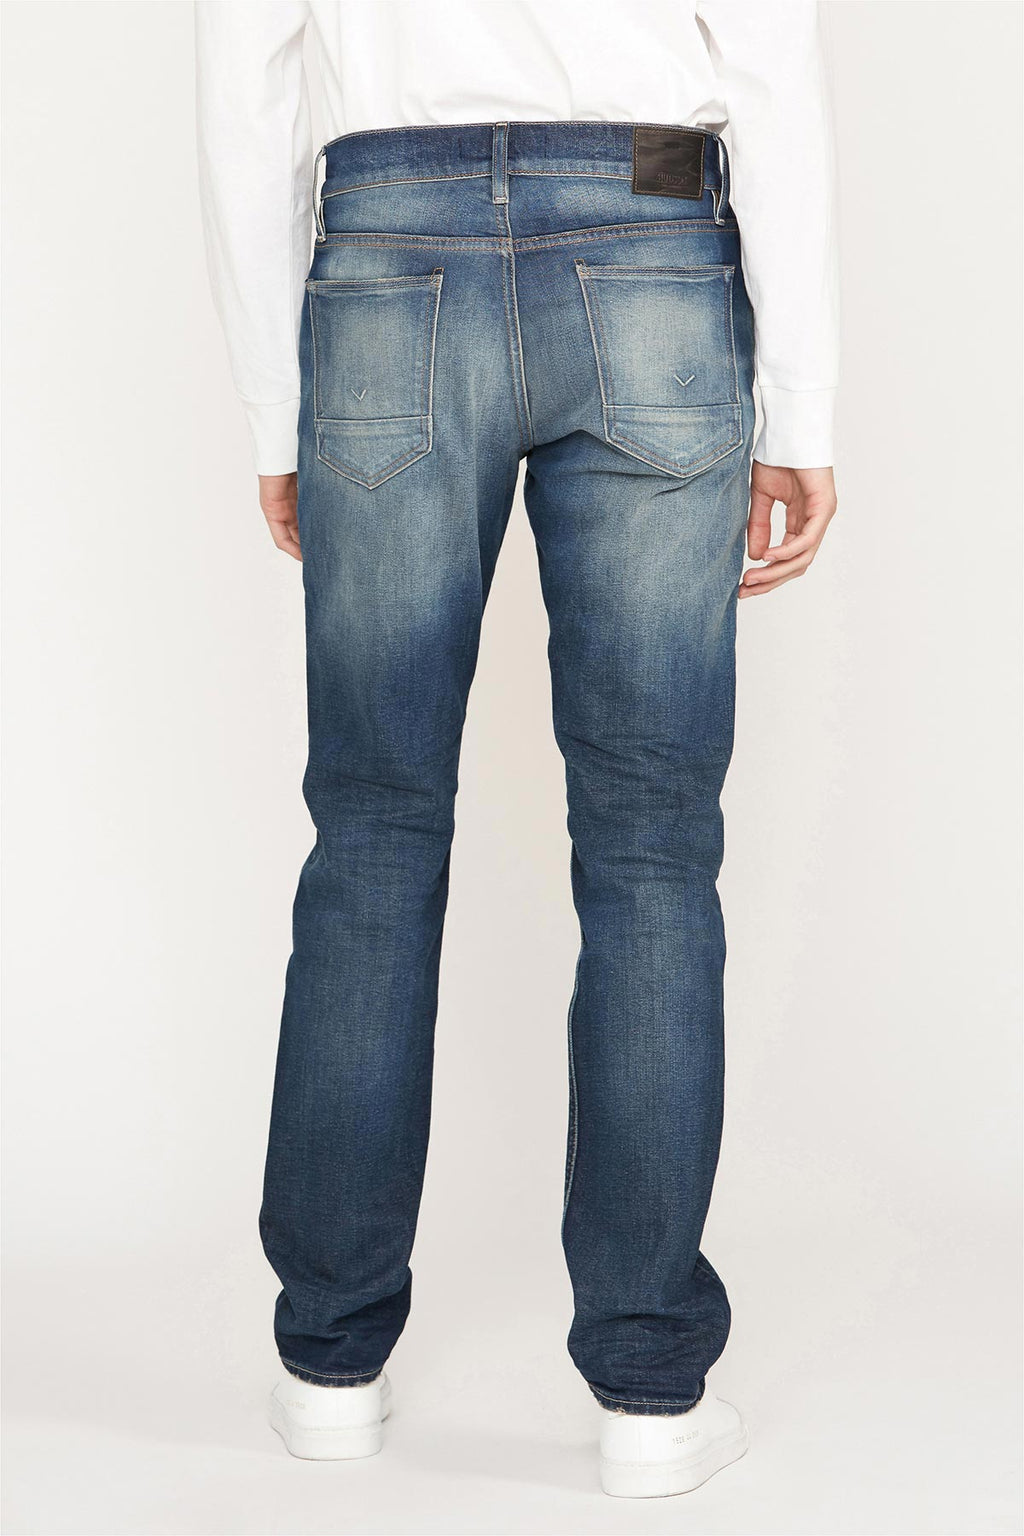 blake slim straight comfort stretch jean mens